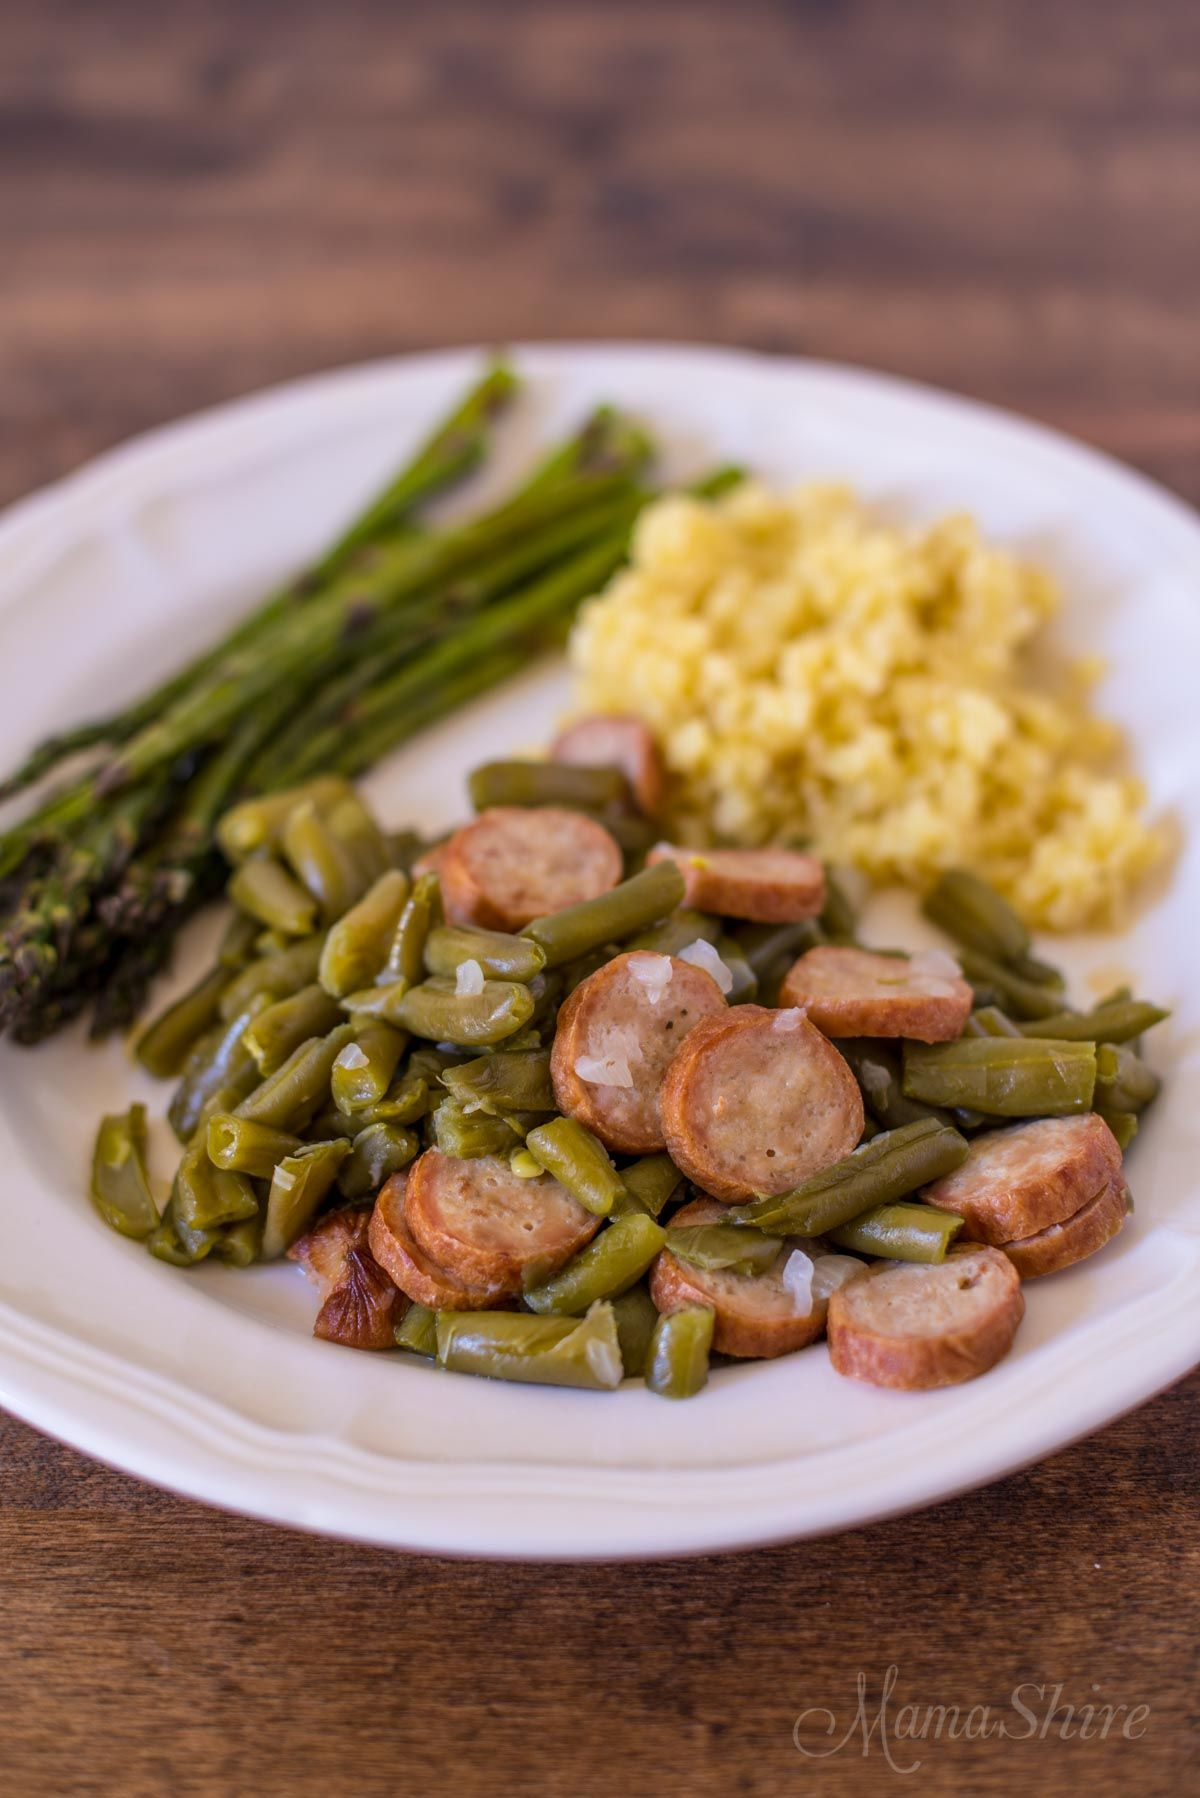 A dark wooden table with a white plate on it. On the plate is a bundle of asparagus, yellow rice, and sausage and beans